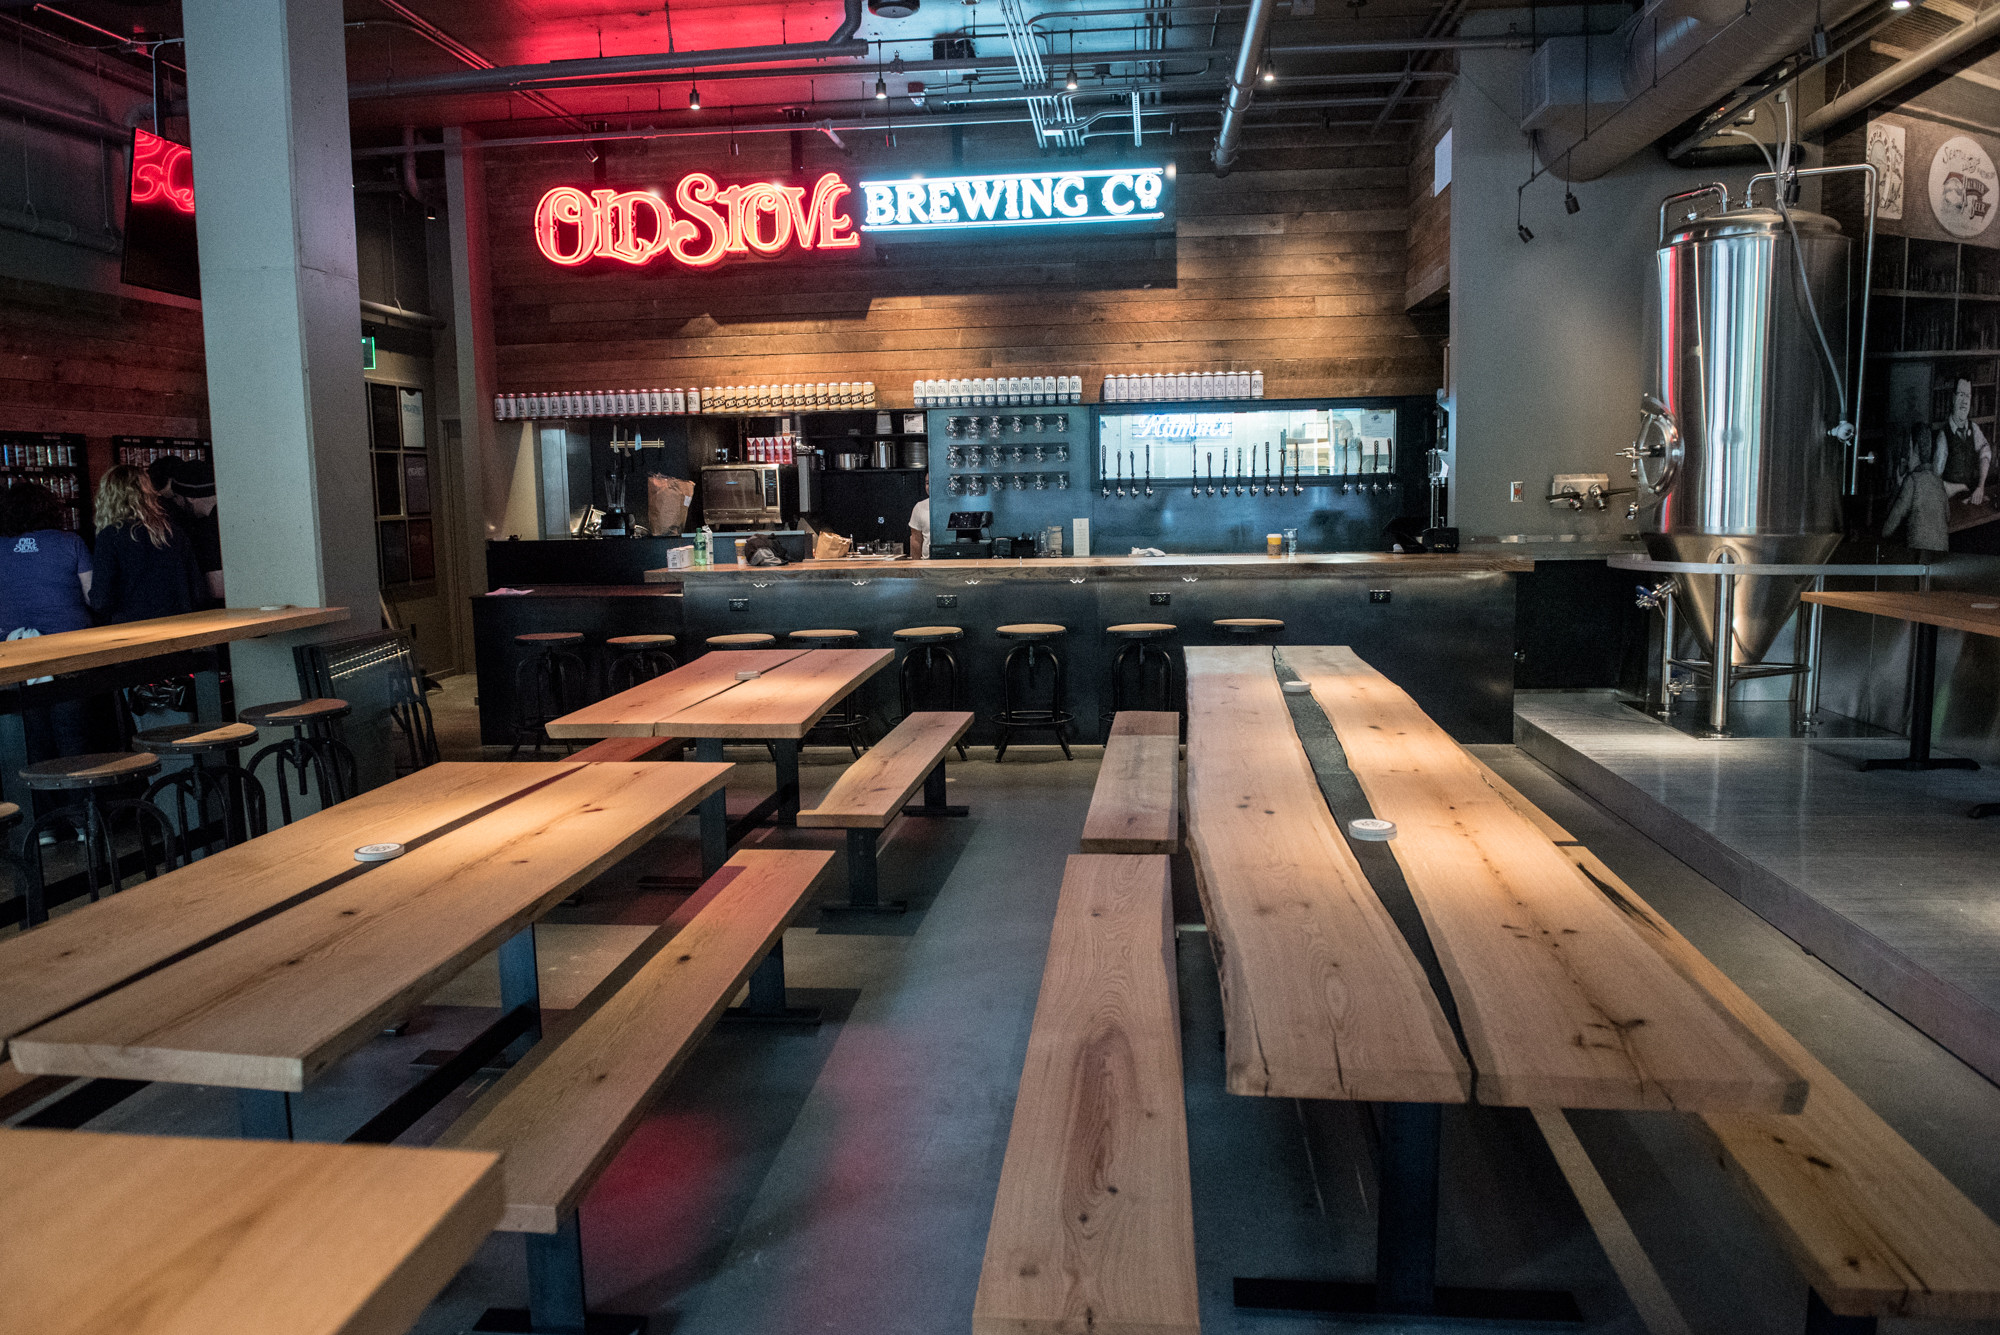 hardwood flooring georgetown ontario of tour inside old stove brewing now open in pike place market eater within tour inside old stove brewing now open in pike place market